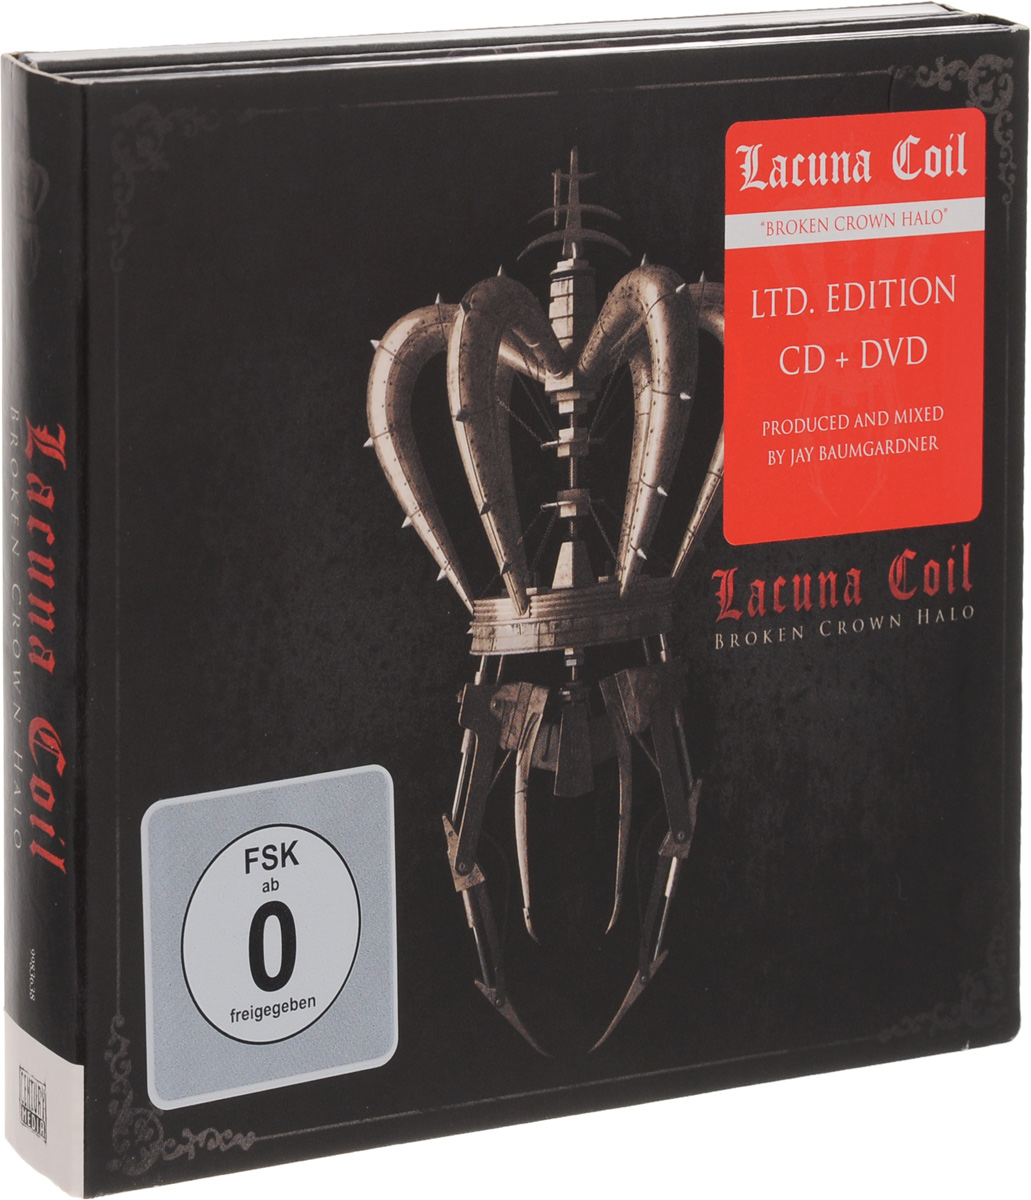 Lacuna Coil Lacuna Coil. Broken Crown Halo (CD + DVD) borg warner e556 ignition coil